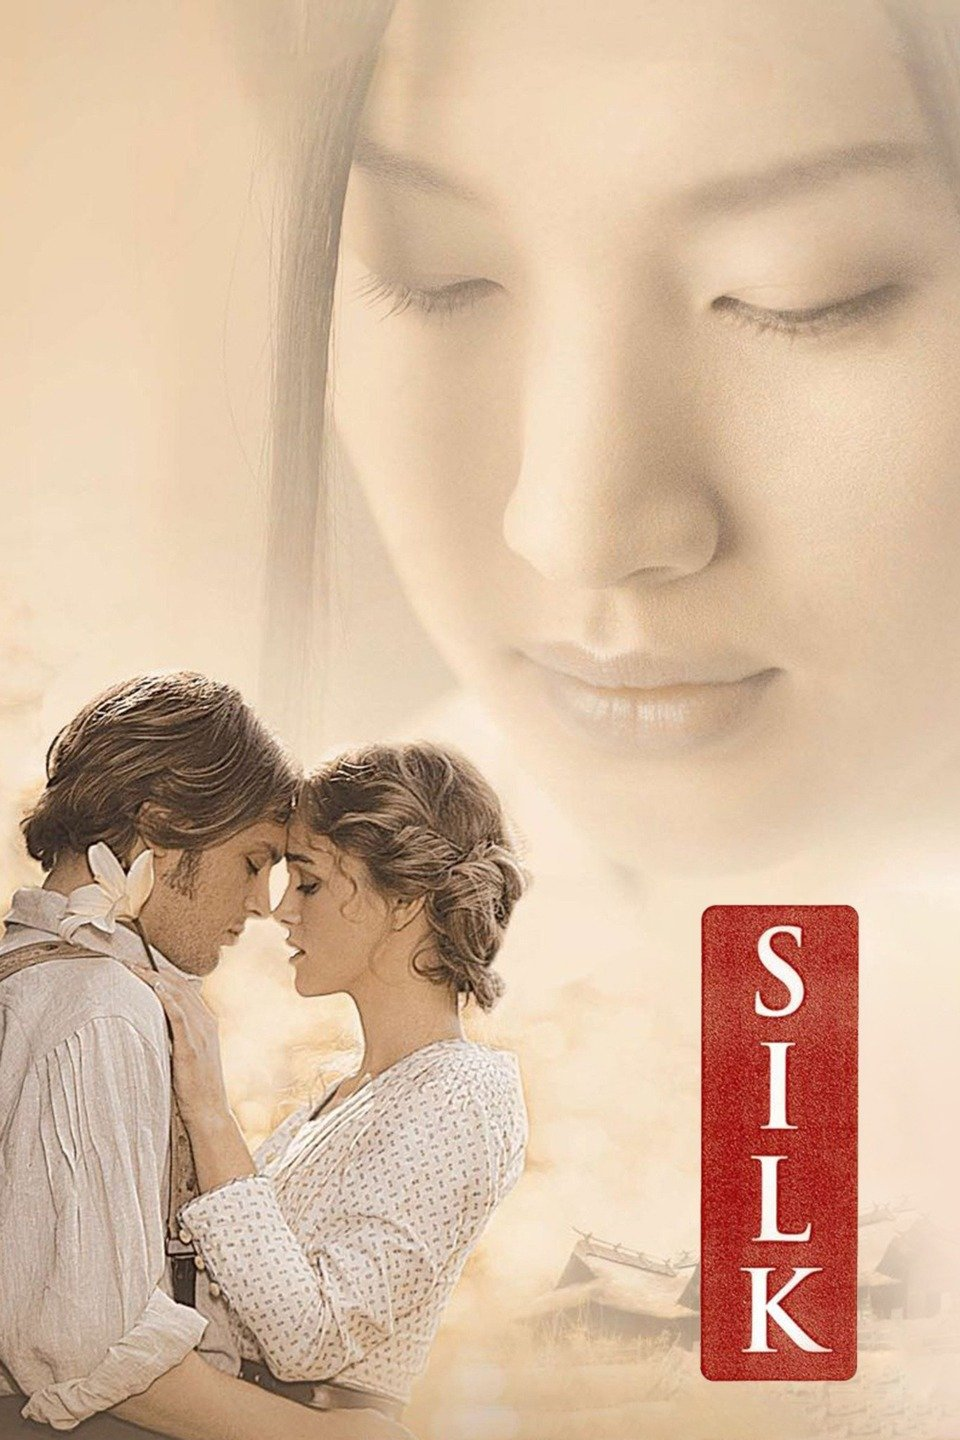 18+ Silk 2007 English 720p HDRip 750MB Download